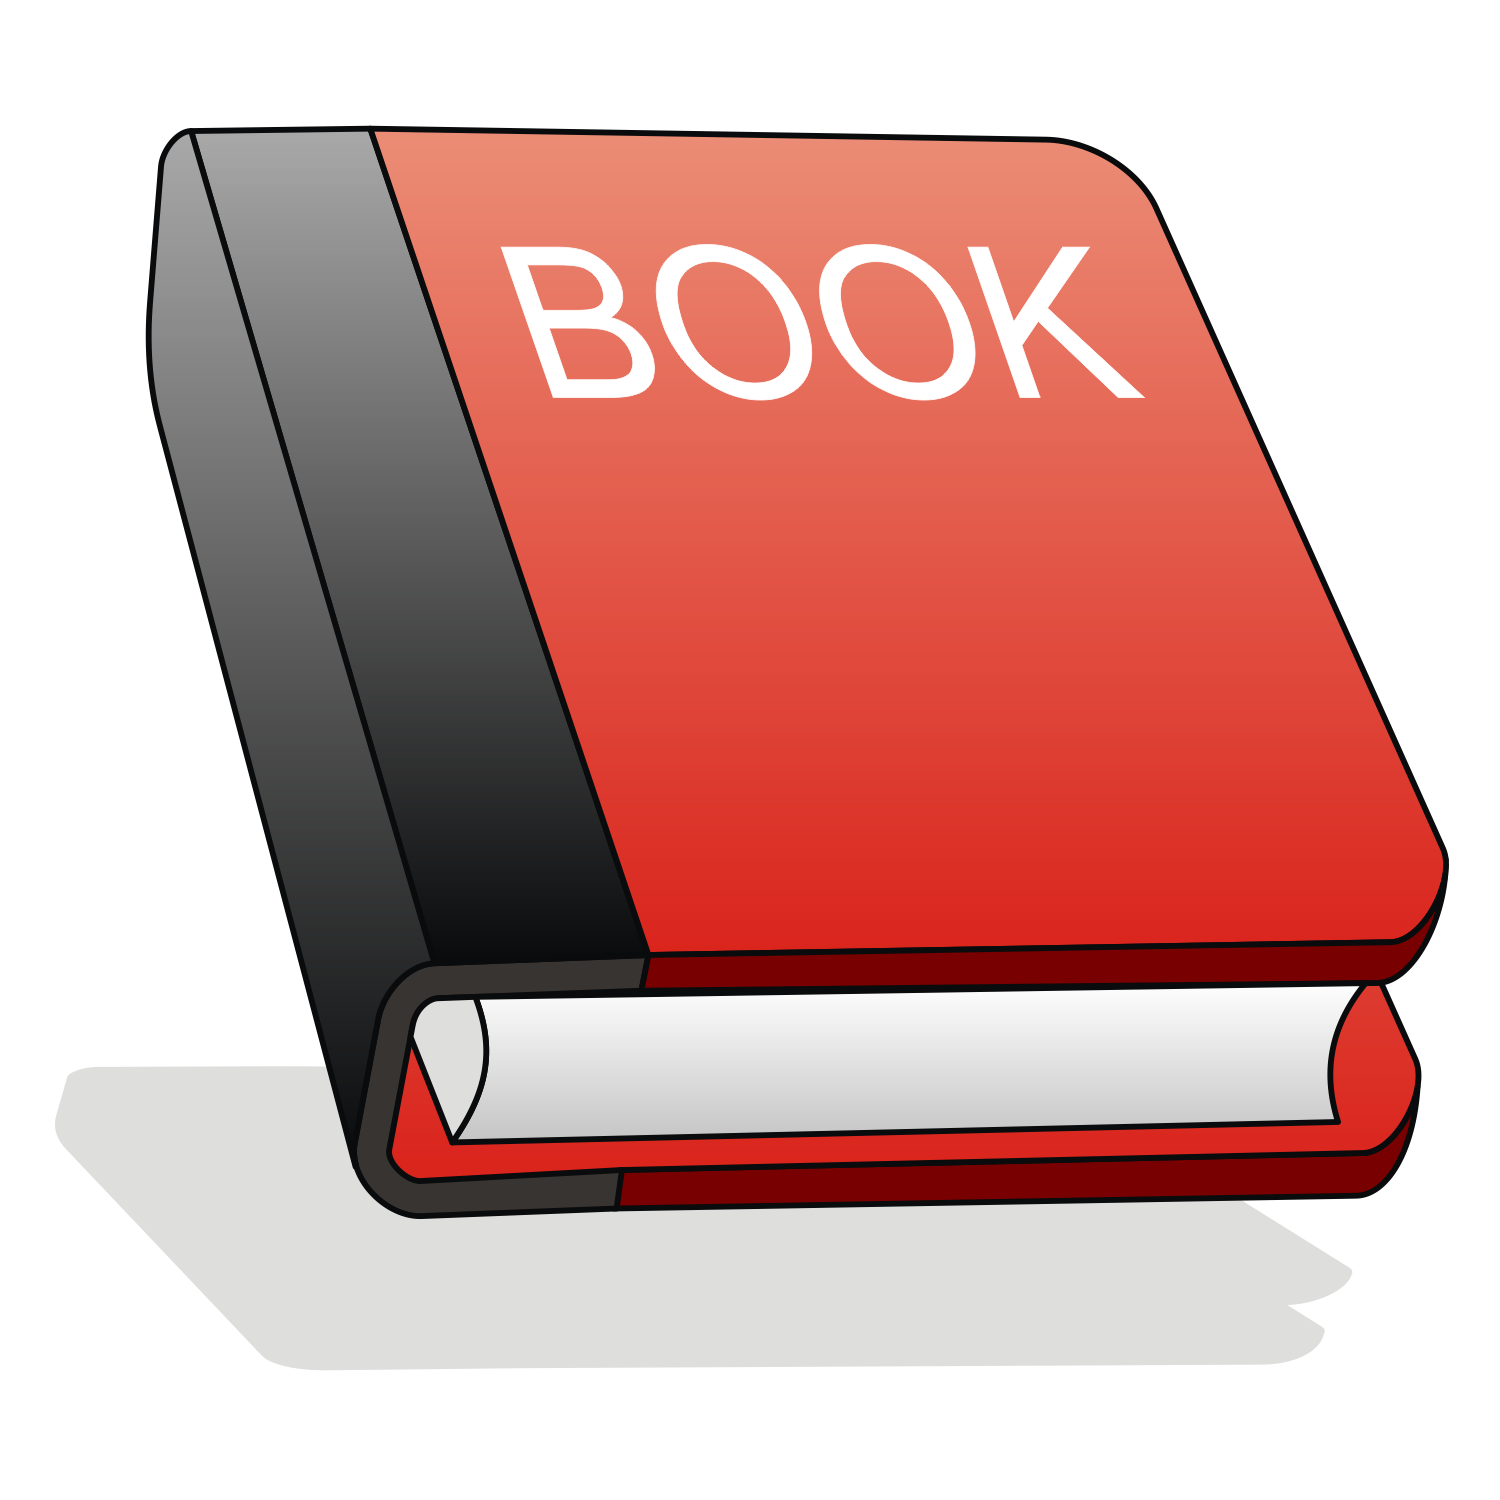 Vector For Free Use: Red Book Icon image #161